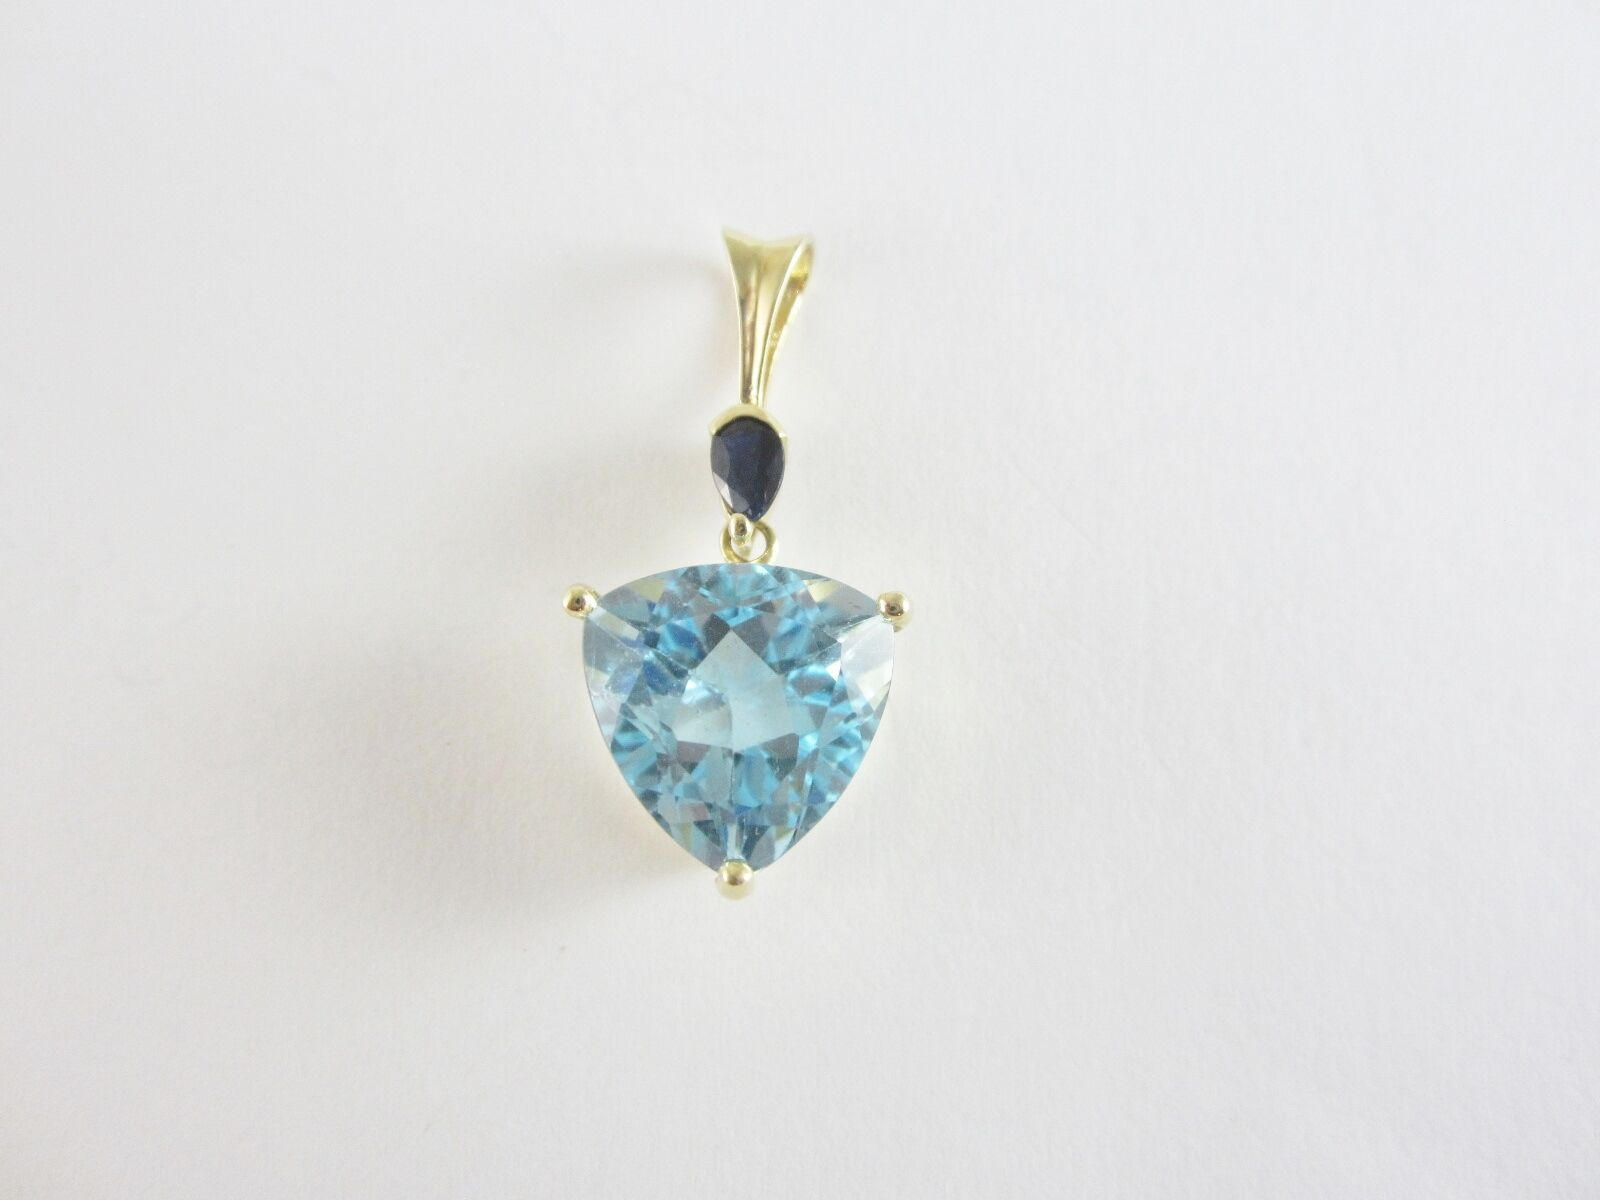 BEAUTIFUL LADIES 14K YELLOW gold TRILLION CUT blueE TOPAZ & SAPPHIRE PENDANT 2.8G